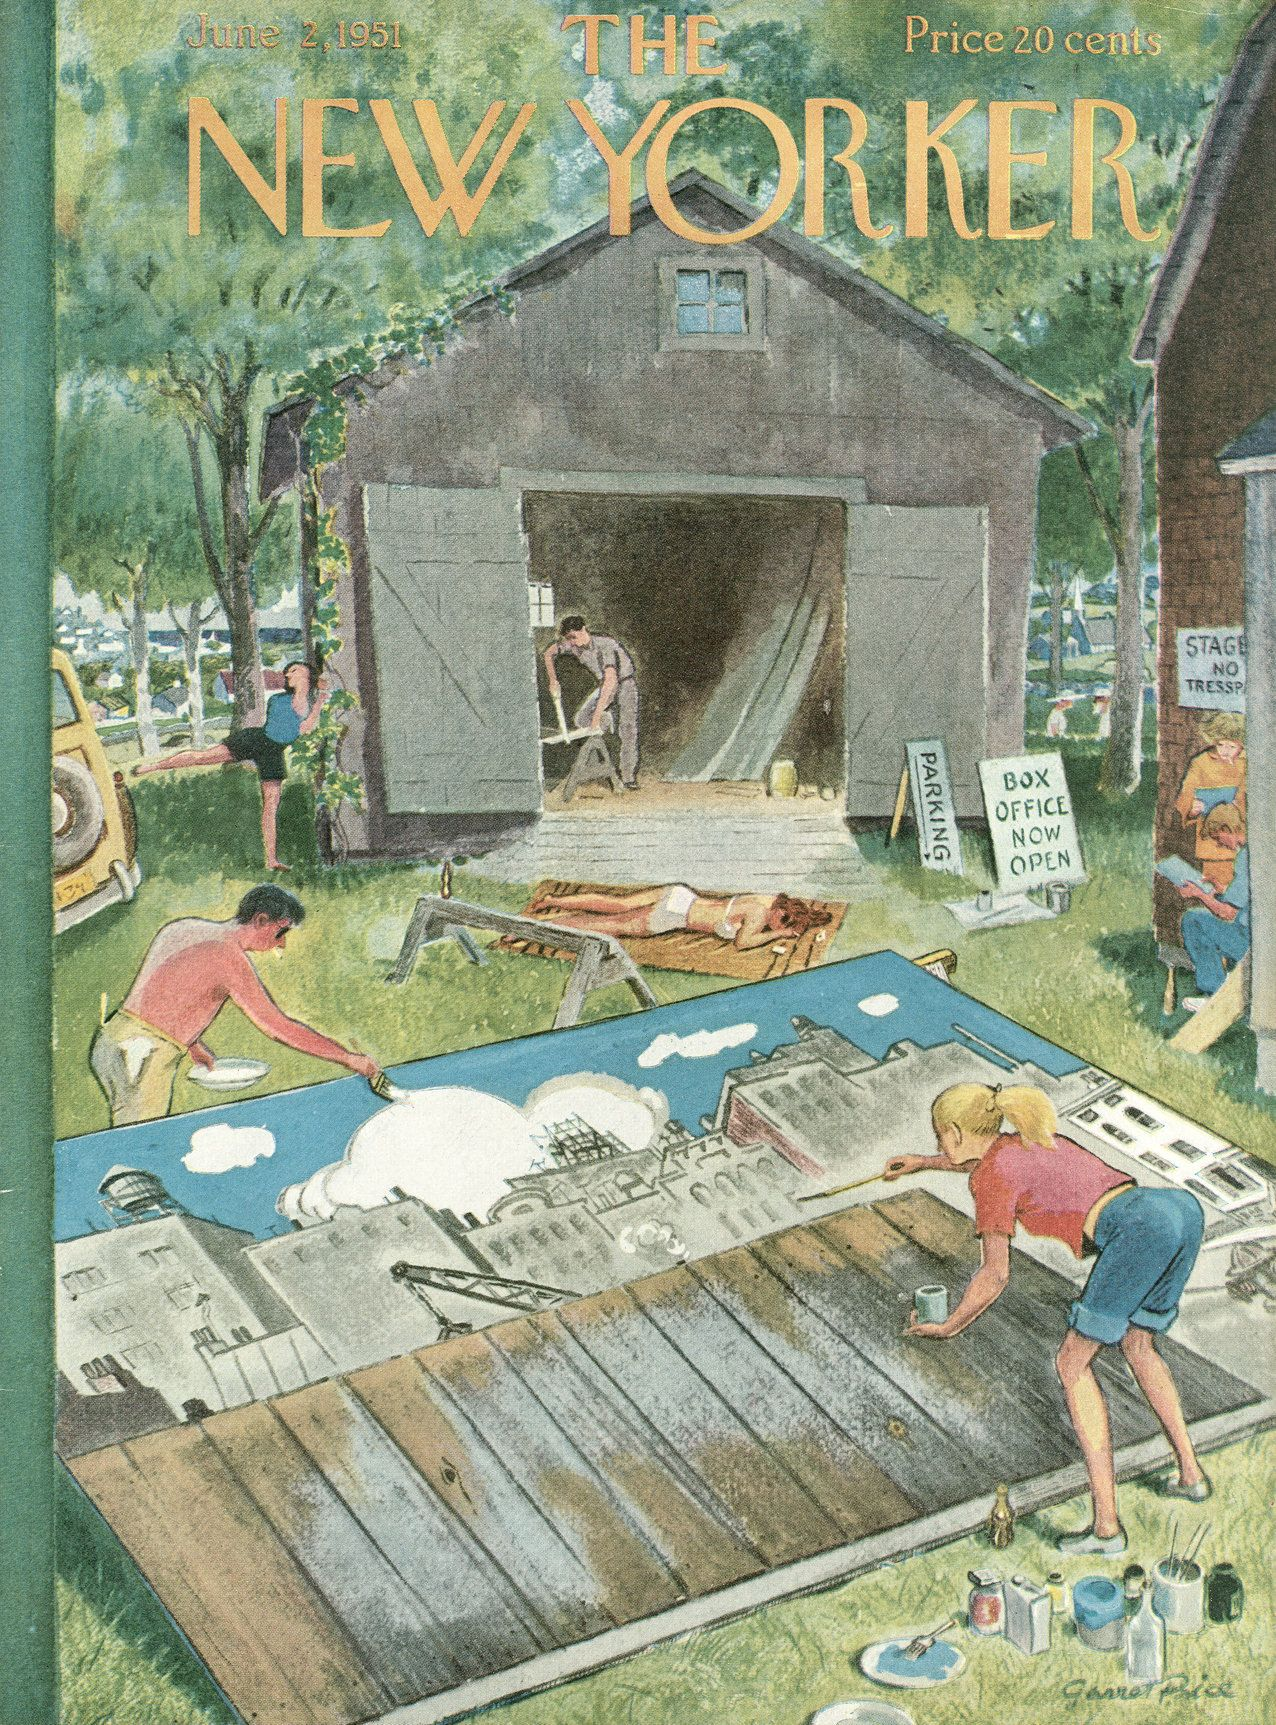 The New Yorker - Saturday, June 2, 1951 - Issue # 1372 - Vol. 27 - N° 16 - Cover by : Garrett Price